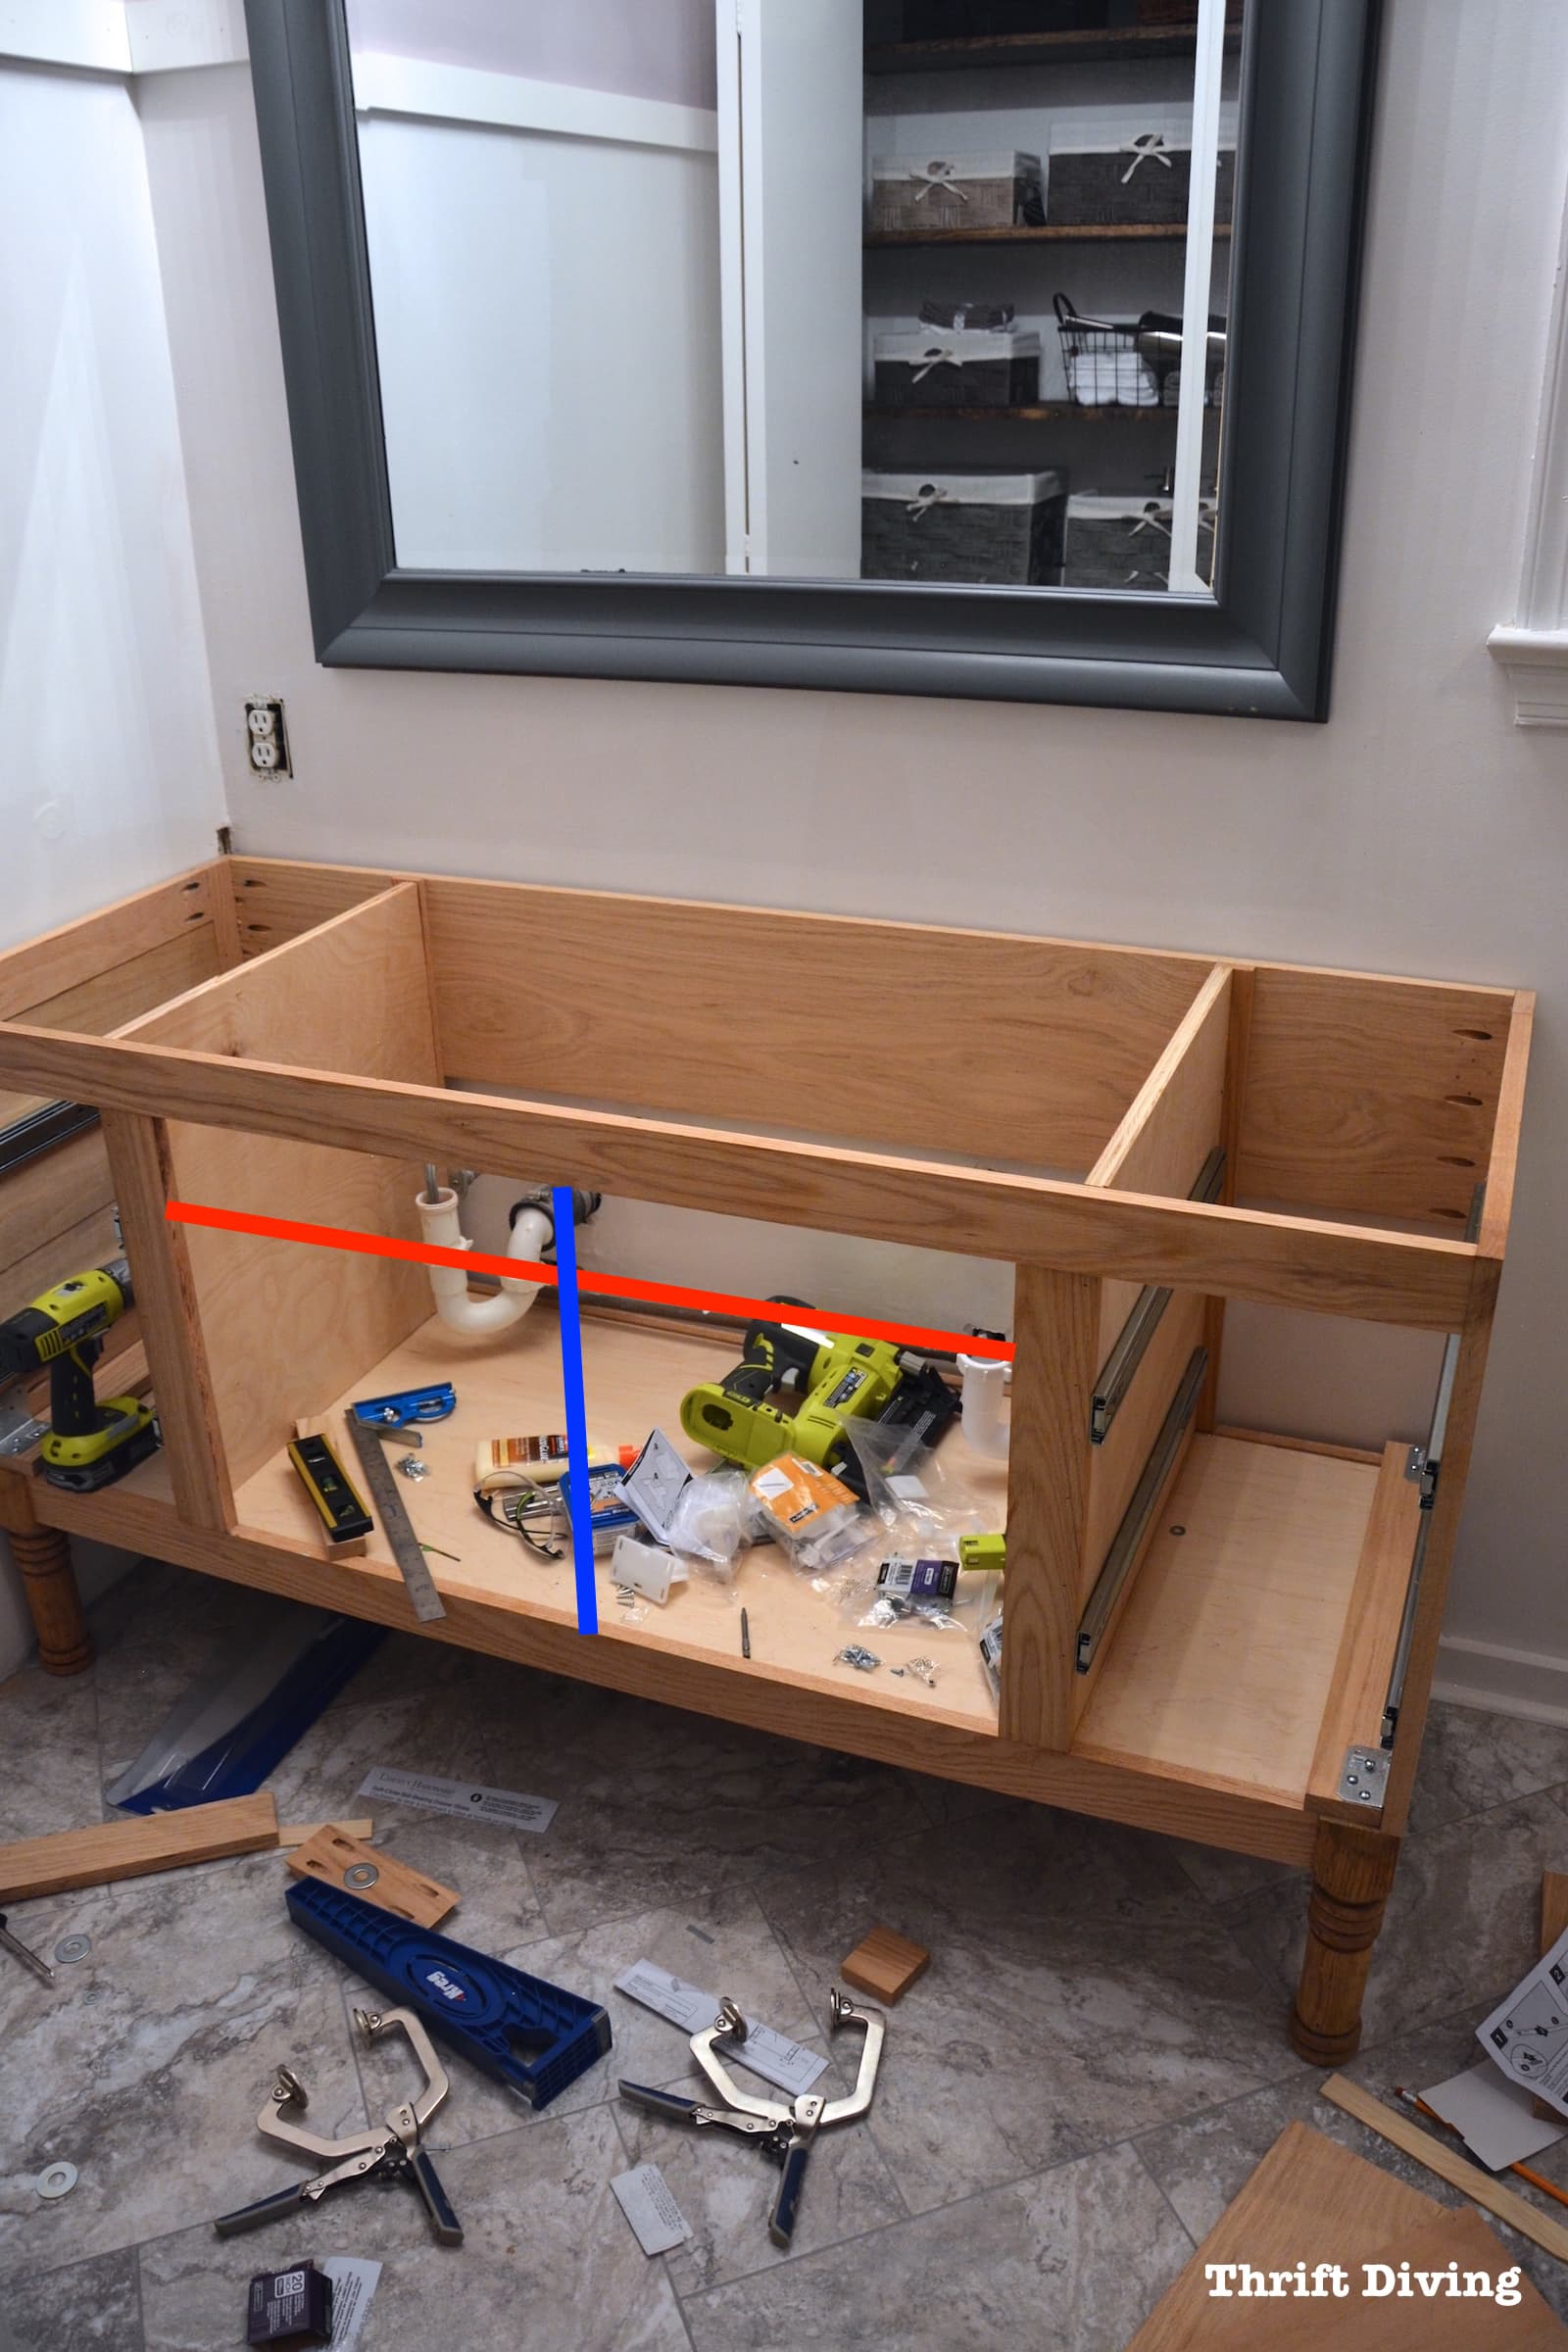 How To Build A Cabinet With Drawers And Doors : build, cabinet, drawers, doors, Building, Bathroom, Vanity:, Making, Cabinet, Doors